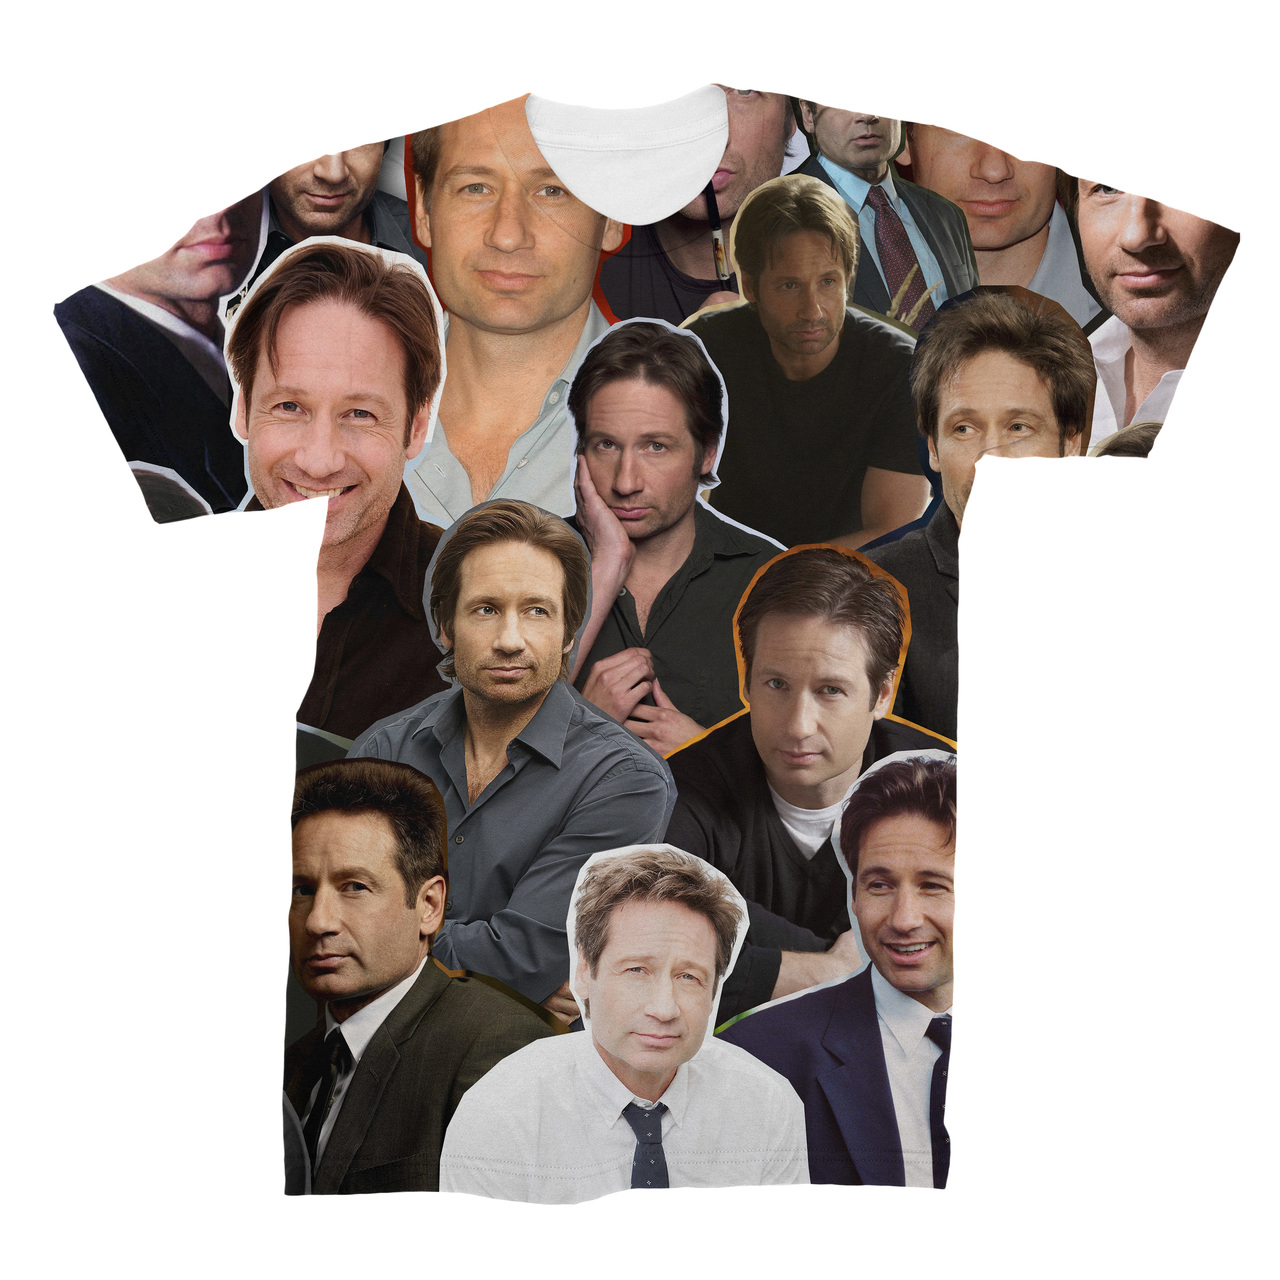 bcd3d33a152d98 David Duchovny Photo Collage T-Shirt - Subliworks